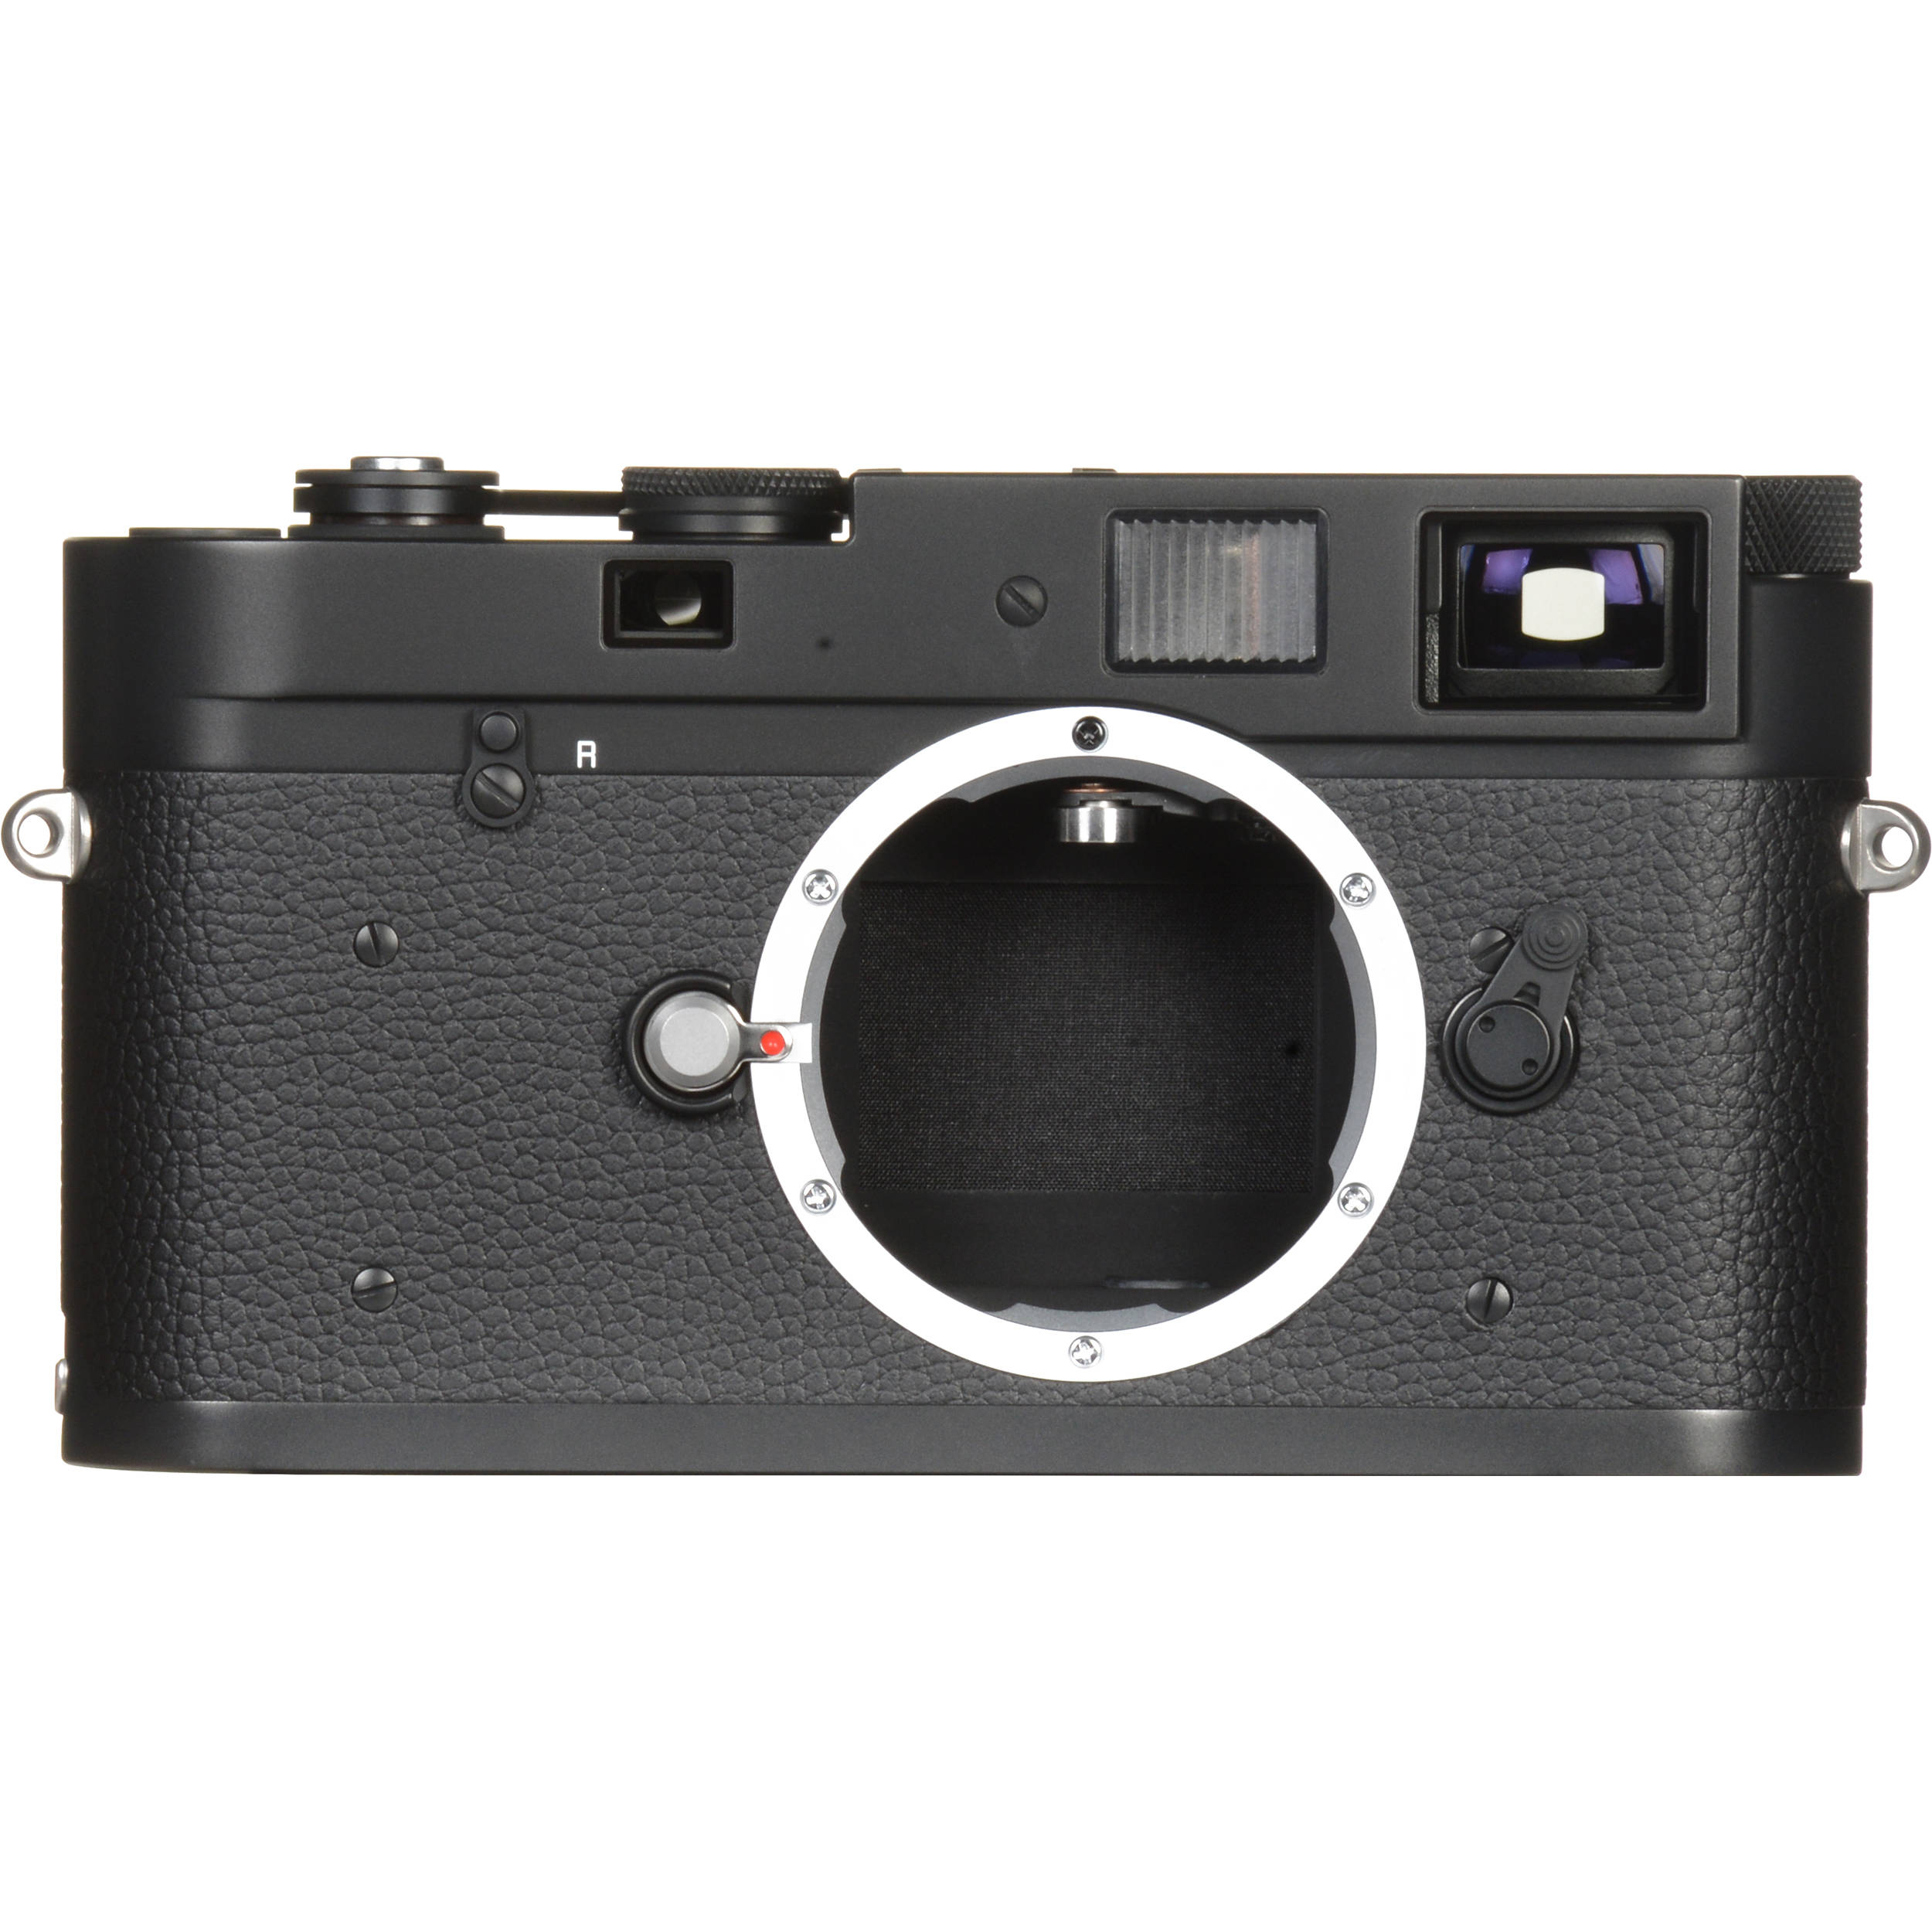 Leica M A Typ 127 Rangefinder Camera Black 10370 Bh Photo Negatives O No Darkroom Hassle Circuit Boards Quotondemand